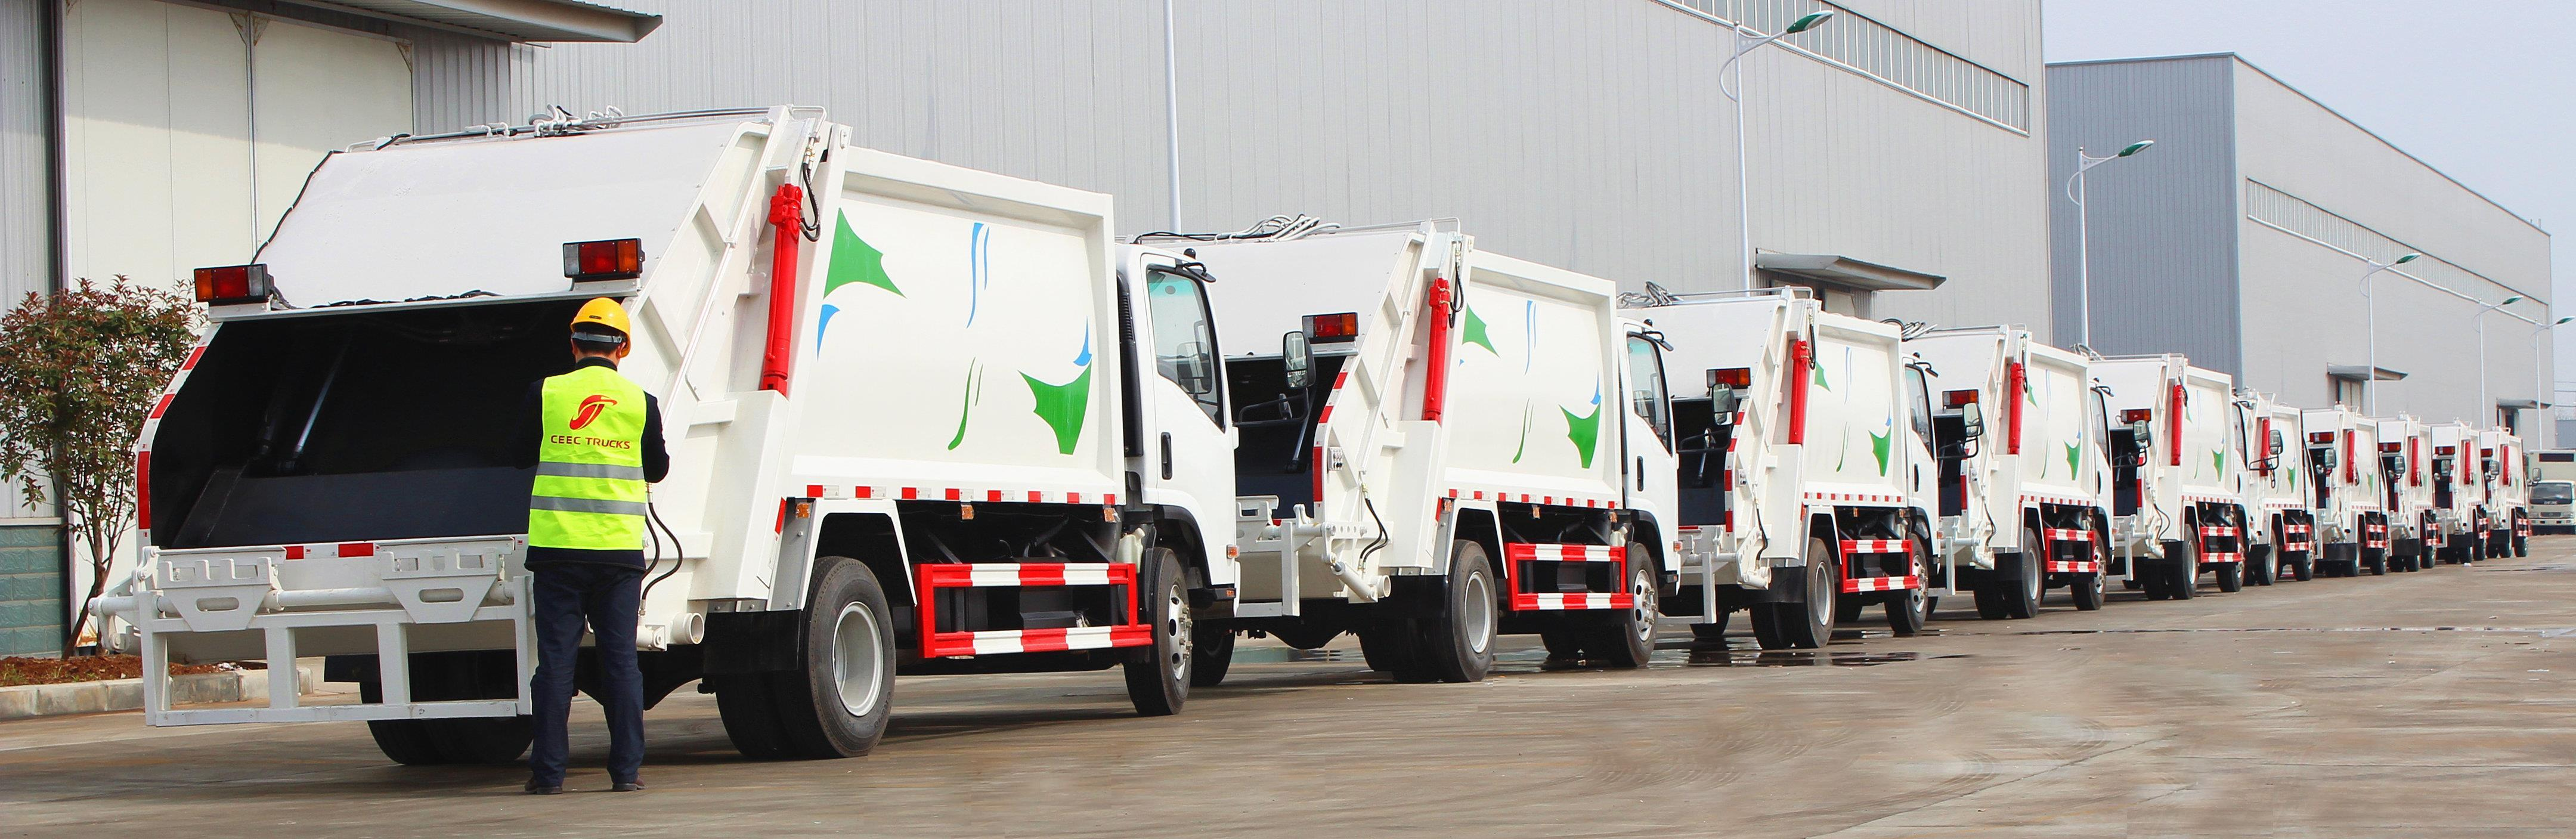 best garbage compactor trucks supplier